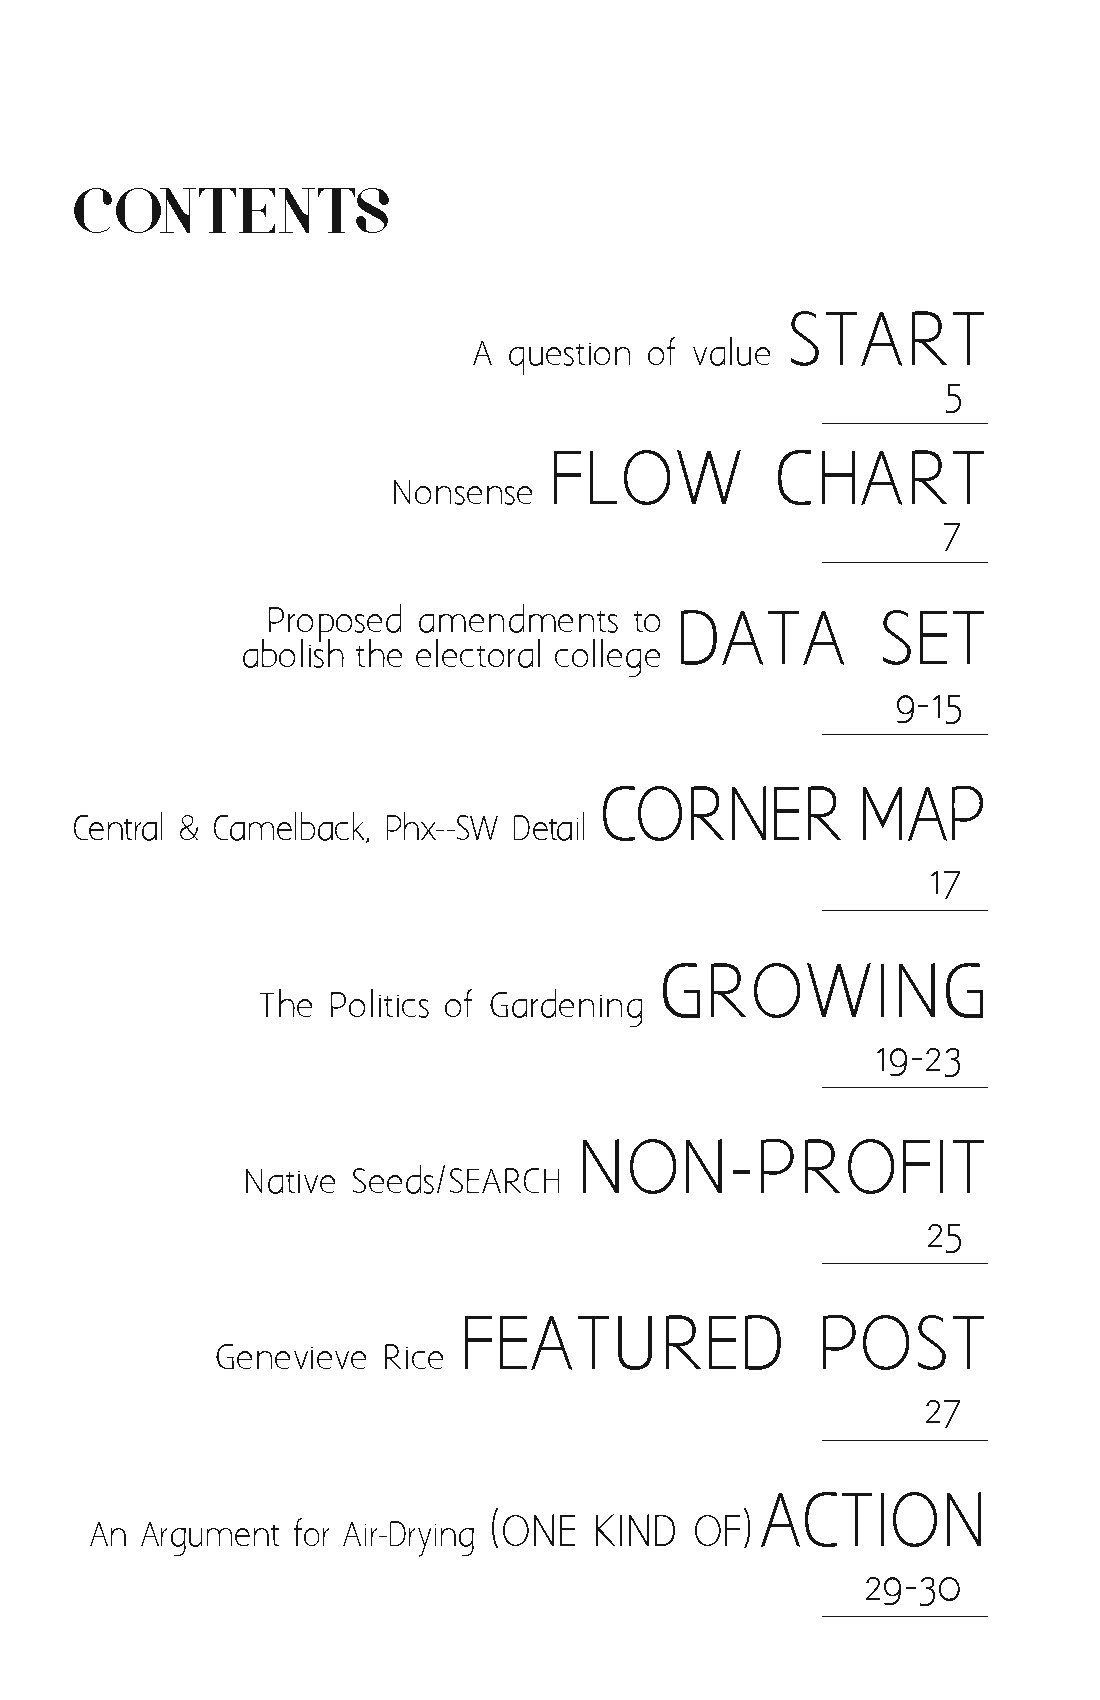 Patterns of Action zine issue 2 table of contents